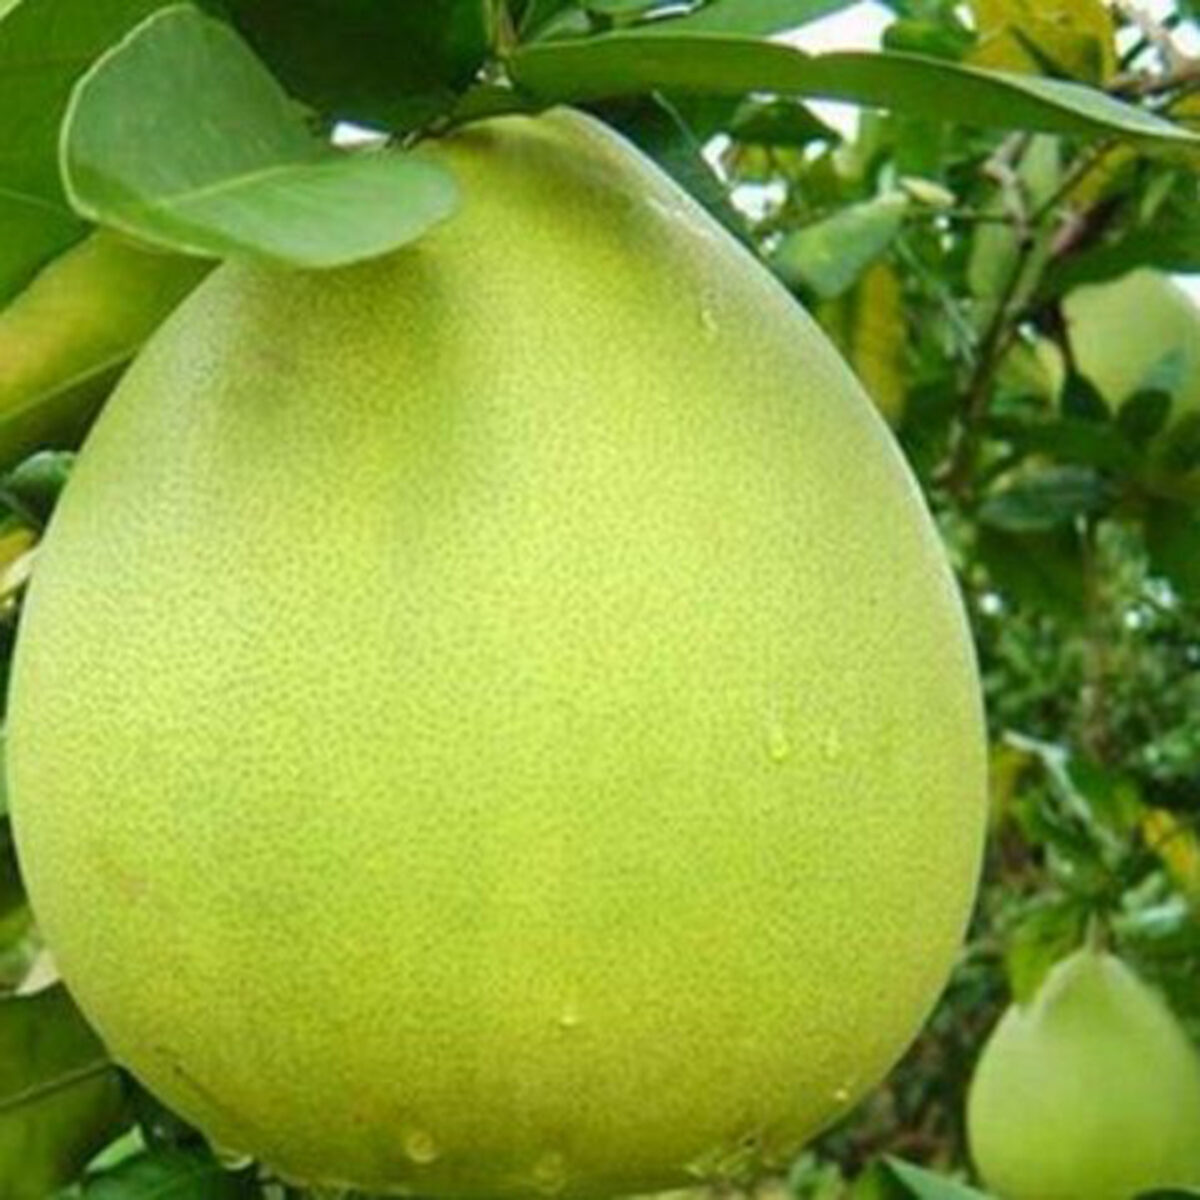 Nam Roi Pomelo is originally from An Giang